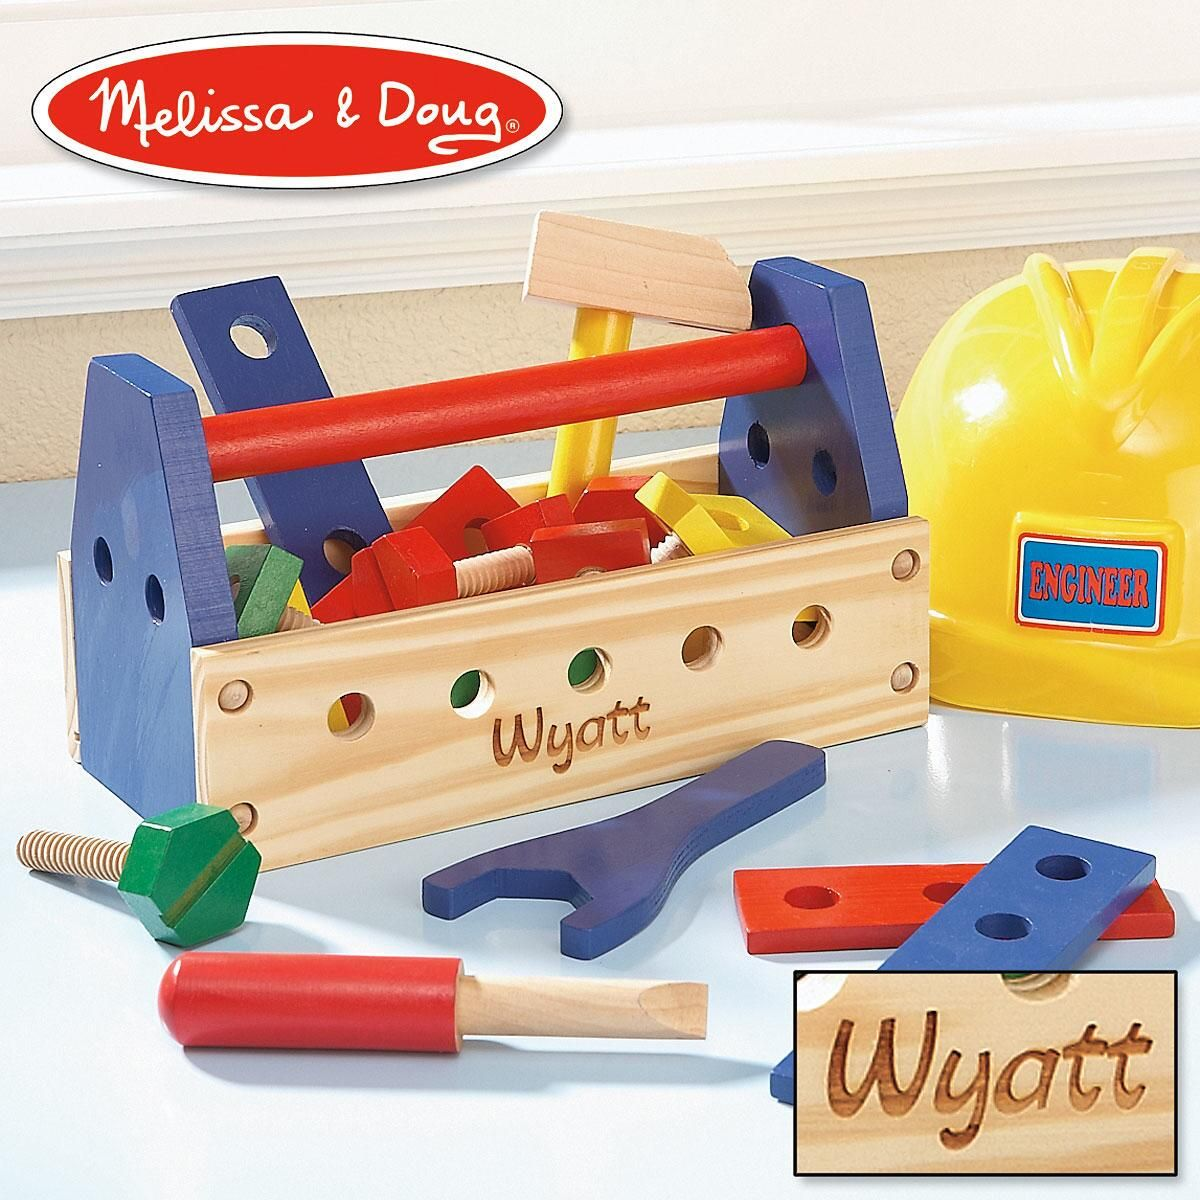 Personalized Toolbox by Melissa & Doug®